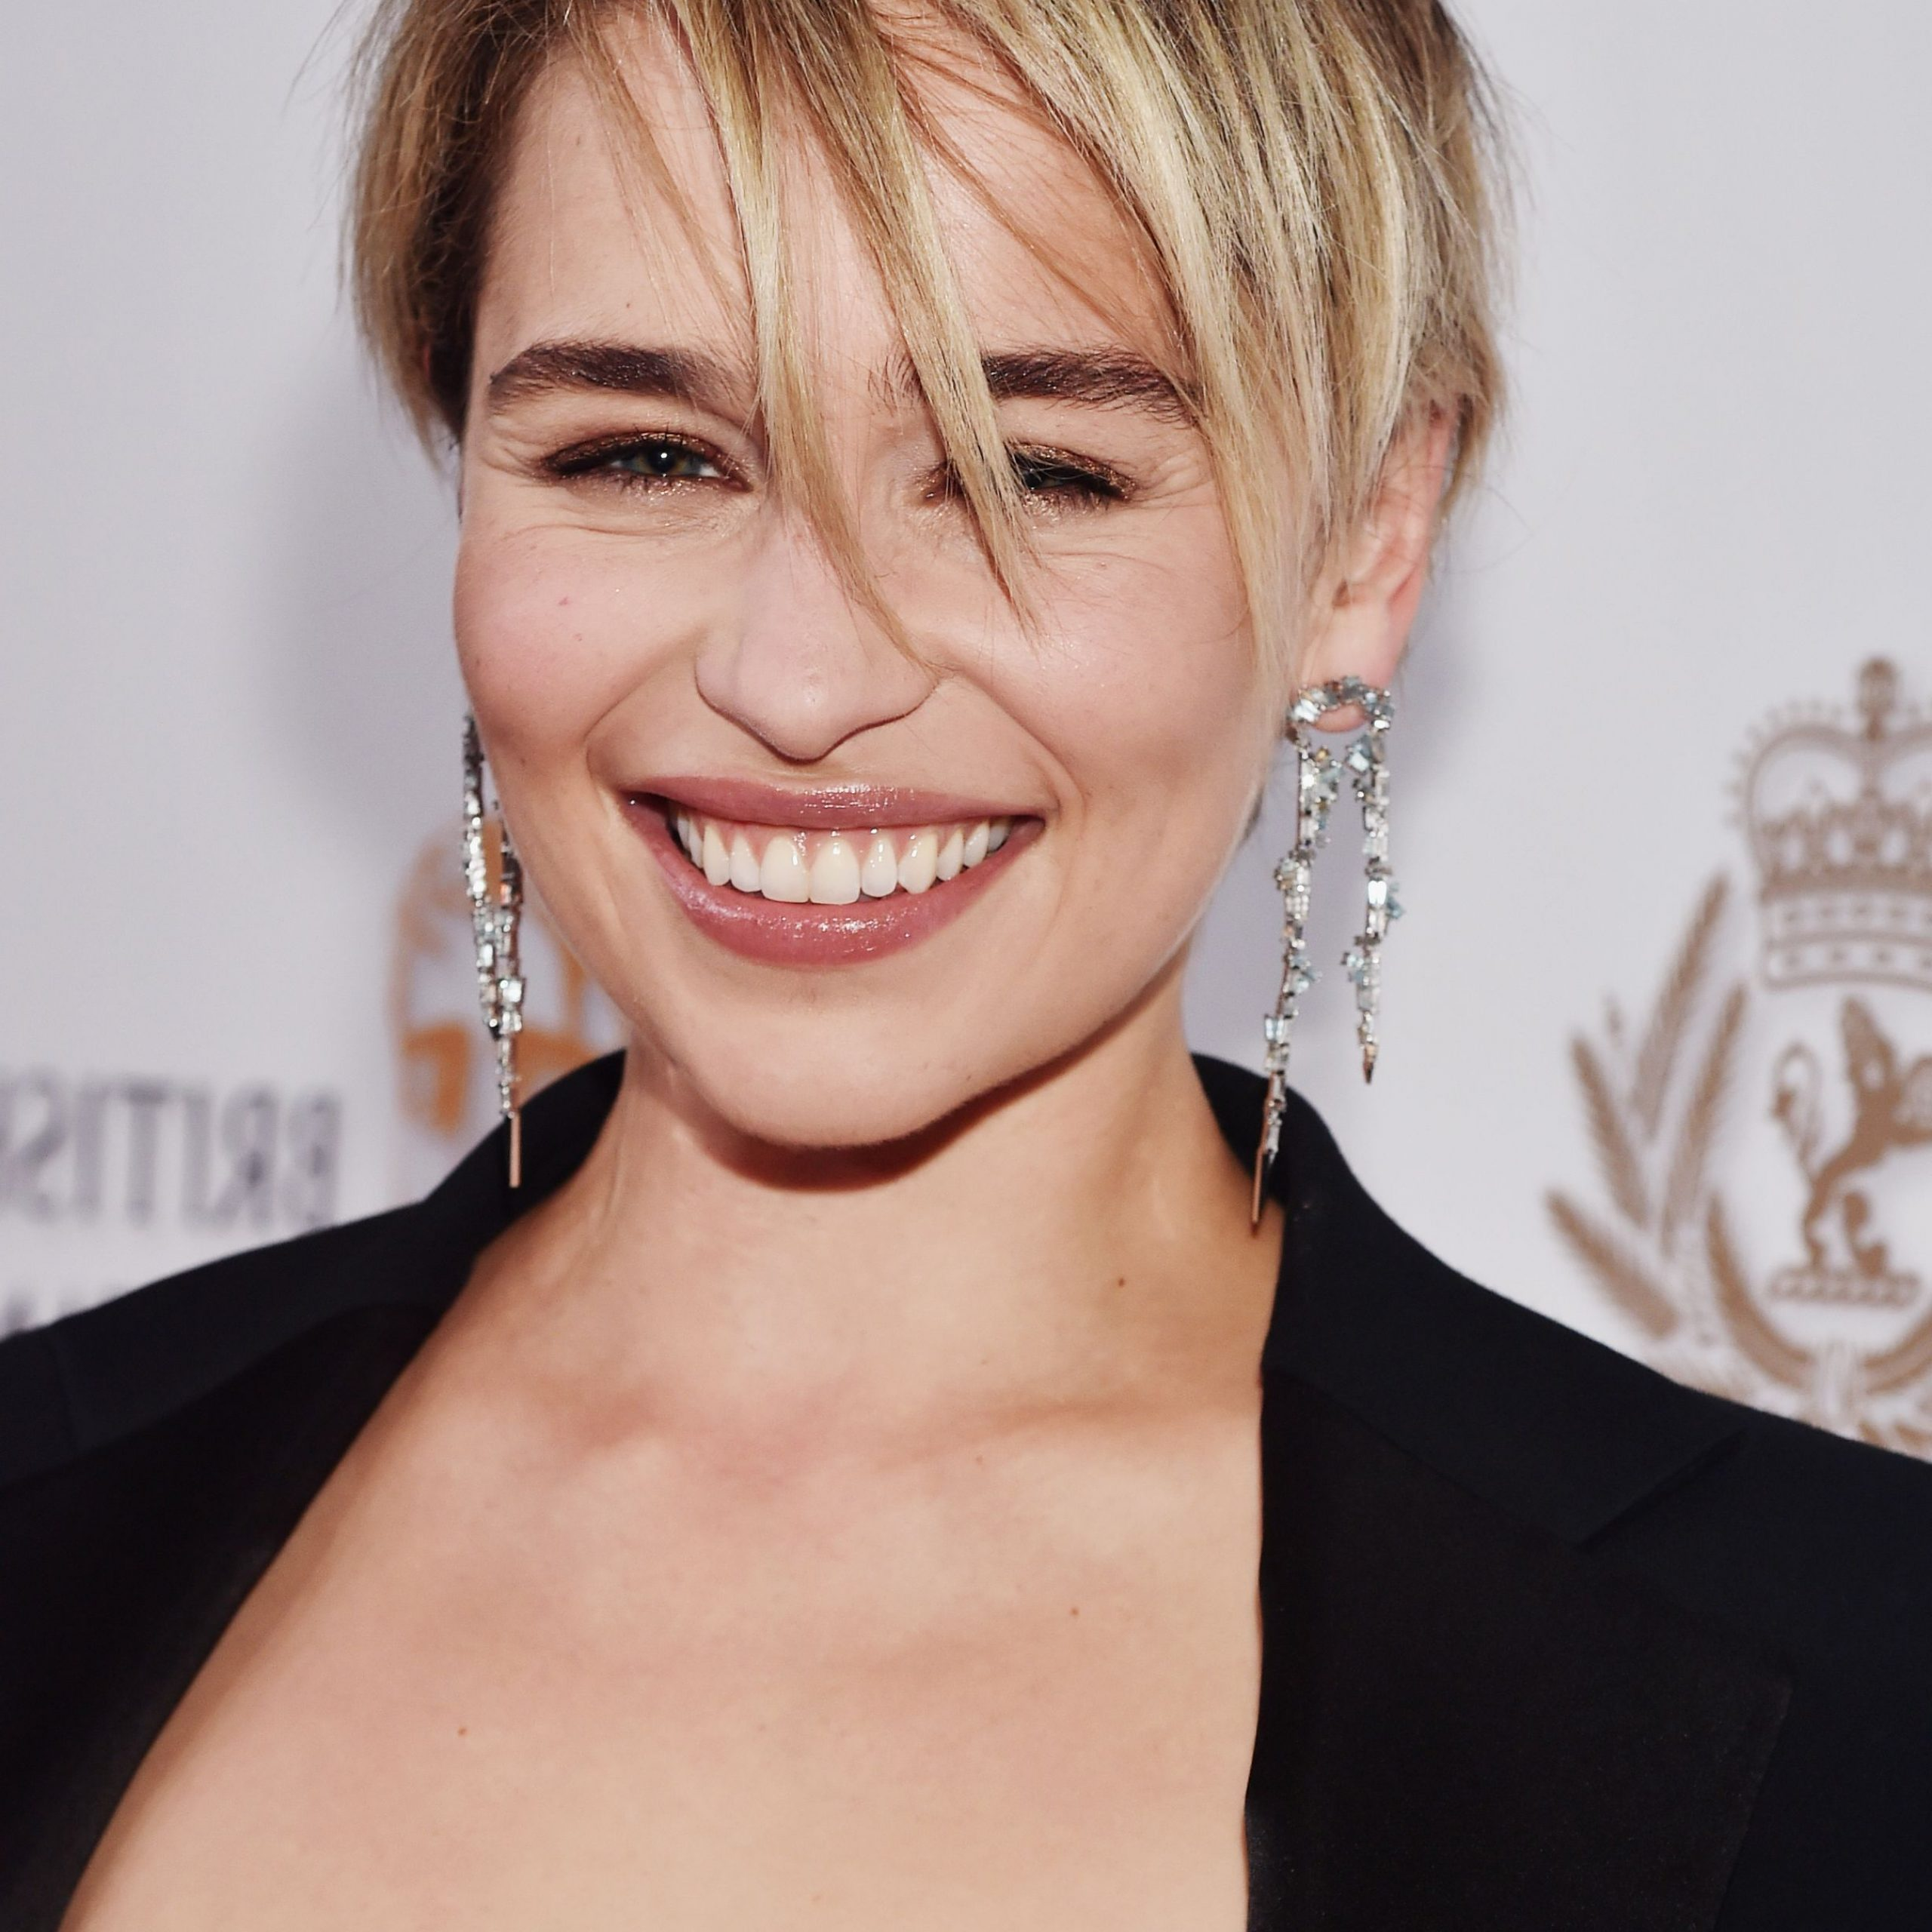 70 Best Pixie Cut Hairstyle Ideas 2019 – Cute Celebrity In Messy Highlighted Pixie Haircuts With Long Side Bangs (View 17 of 20)